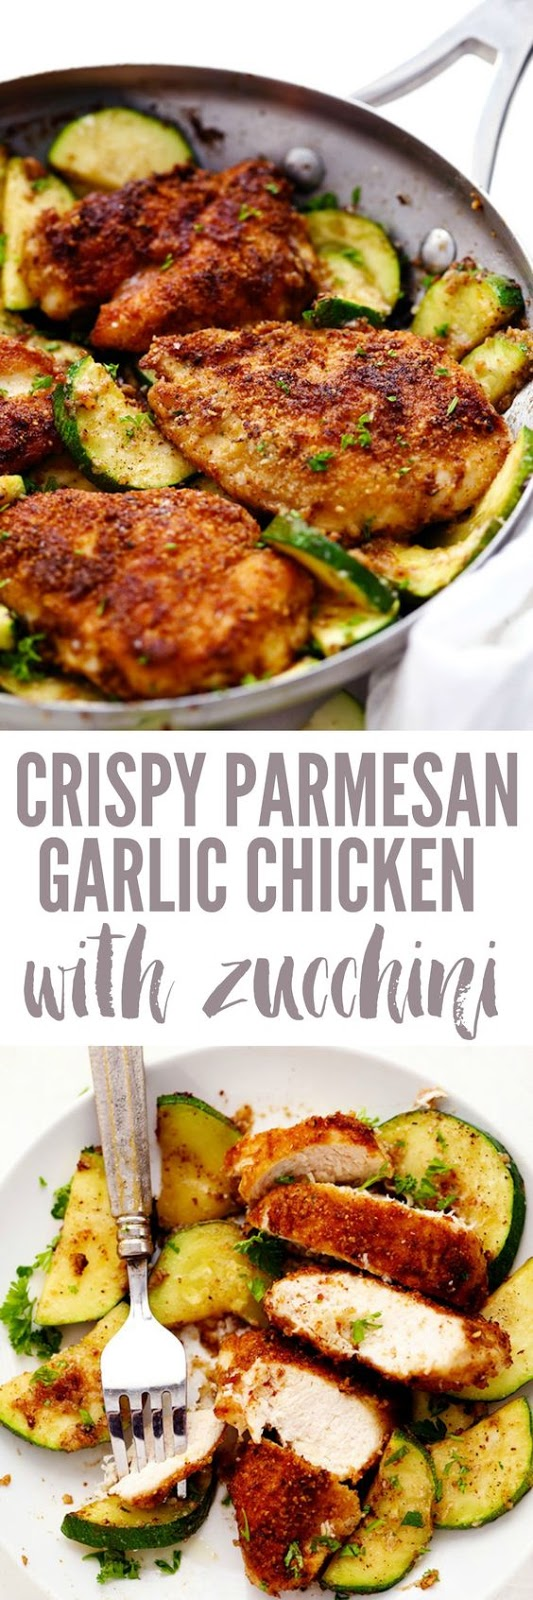 CRISPY PARMESAN GARLIC CHICKEN WITH ZUCCHINI #CRISPY #PARMESAN #GARLIC #CHICKEN #ZUCCHINI   #DESSERTS #HEALTHYFOOD #EASY_RECIPES #DINNER #LAUCH #DELICIOUS #EASY #HOLIDAYS #RECIPE #SPECIAL_DIET #WORLD_CUISINE #CAKE #GRILL #APPETIZERS #HEALTHY_RECIPES #DRINKS #COOKING_METHOD #ITALIAN_RECIPES #MEAT #VEGAN_RECIPES #COOKIES #PASTA #FRUIT #SALAD #SOUP_APPETIZERS #NON_ALCOHOLIC_DRINKS #MEAL_PLANNING #VEGETABLES #SOUP #PASTRY #CHOCOLATE #DAIRY #ALCOHOLIC_DRINKS #BULGUR_SALAD #BAKING #SNACKS #BEEF_RECIPES #MEAT_APPETIZERS #MEXICAN_RECIPES #BREAD #ASIAN_RECIPES #SEAFOOD_APPETIZERS #MUFFINS #BREAKFAST_AND_BRUNCH #CONDIMENTS #CUPCAKES #CHEESE #CHICKEN_RECIPES #PIE #COFFEE #NO_BAKE_DESSERTS #HEALTHY_SNACKS #SEAFOOD #GRAIN #LUNCHES_DINNERS #MEXICAN #QUICK_BREAD #LIQUOR